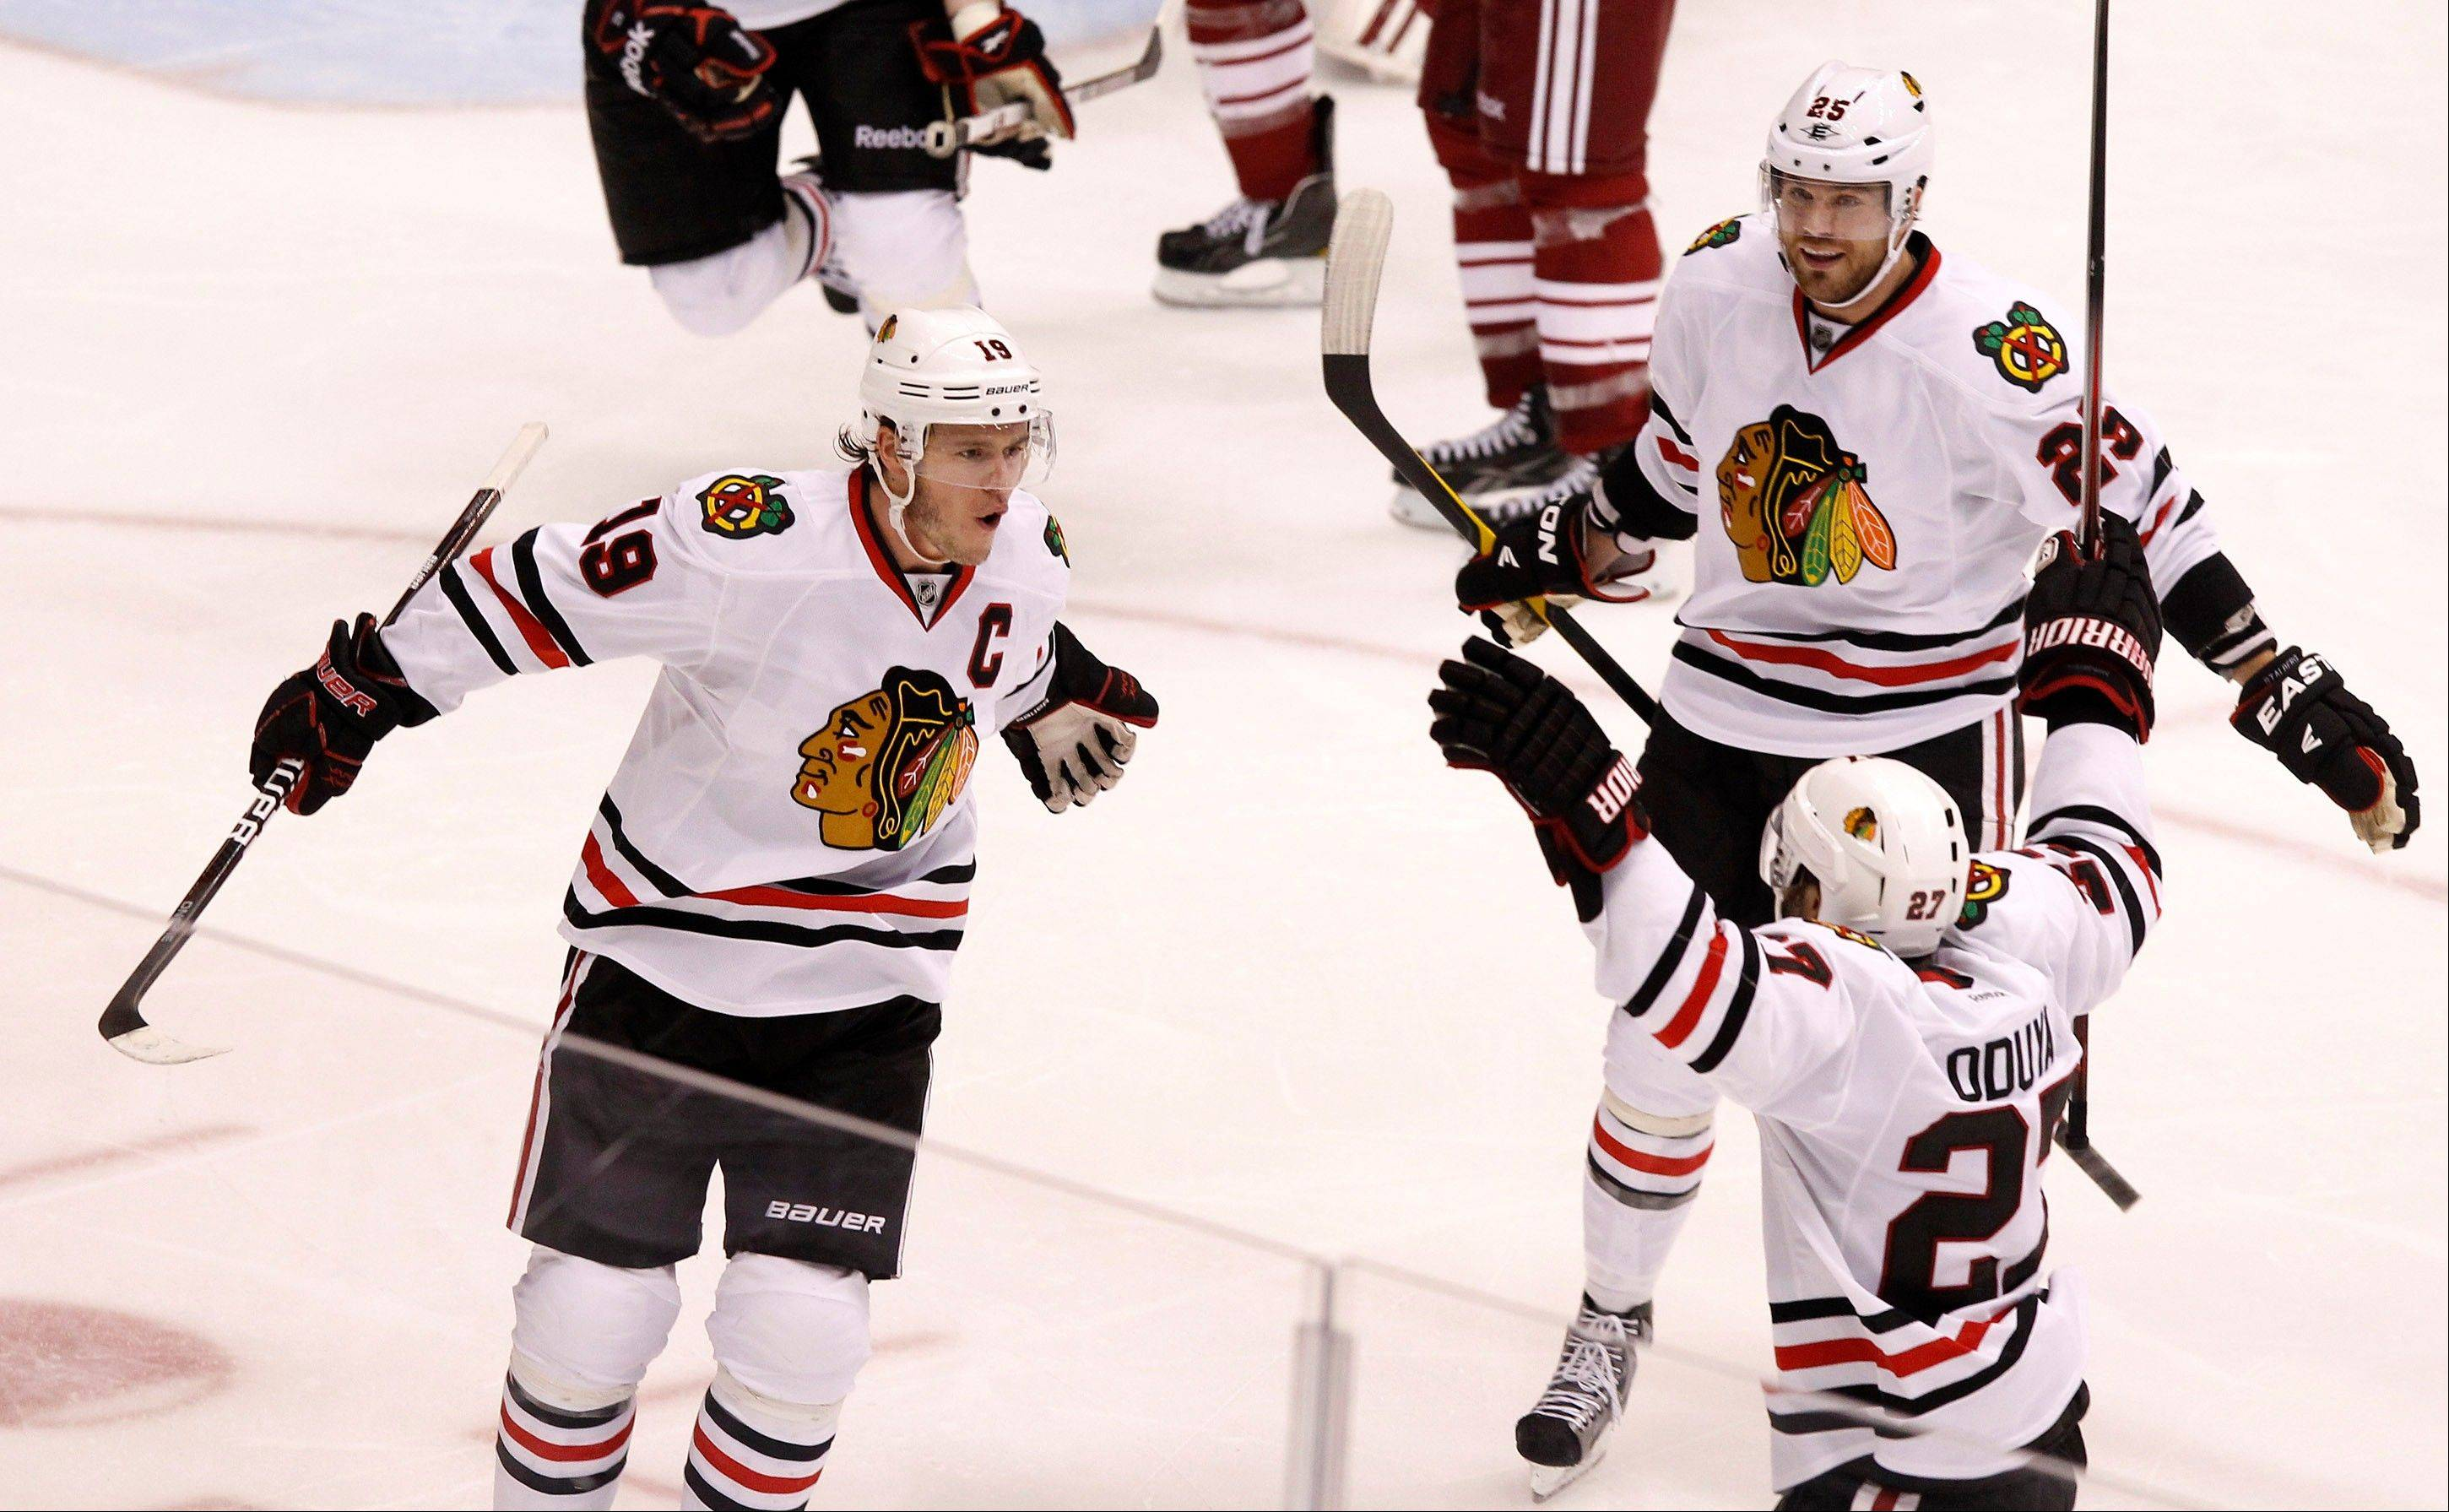 Chicago Blackhawks' Jonathan Toews (19) celebrates his game-winning goal against the Phoenix Coyotes with teammates Viktor Stalberg (25) and Johnny Oduya (27) during overtime in Game 5. The Blackhawks defeated the Coyotes 2-1.